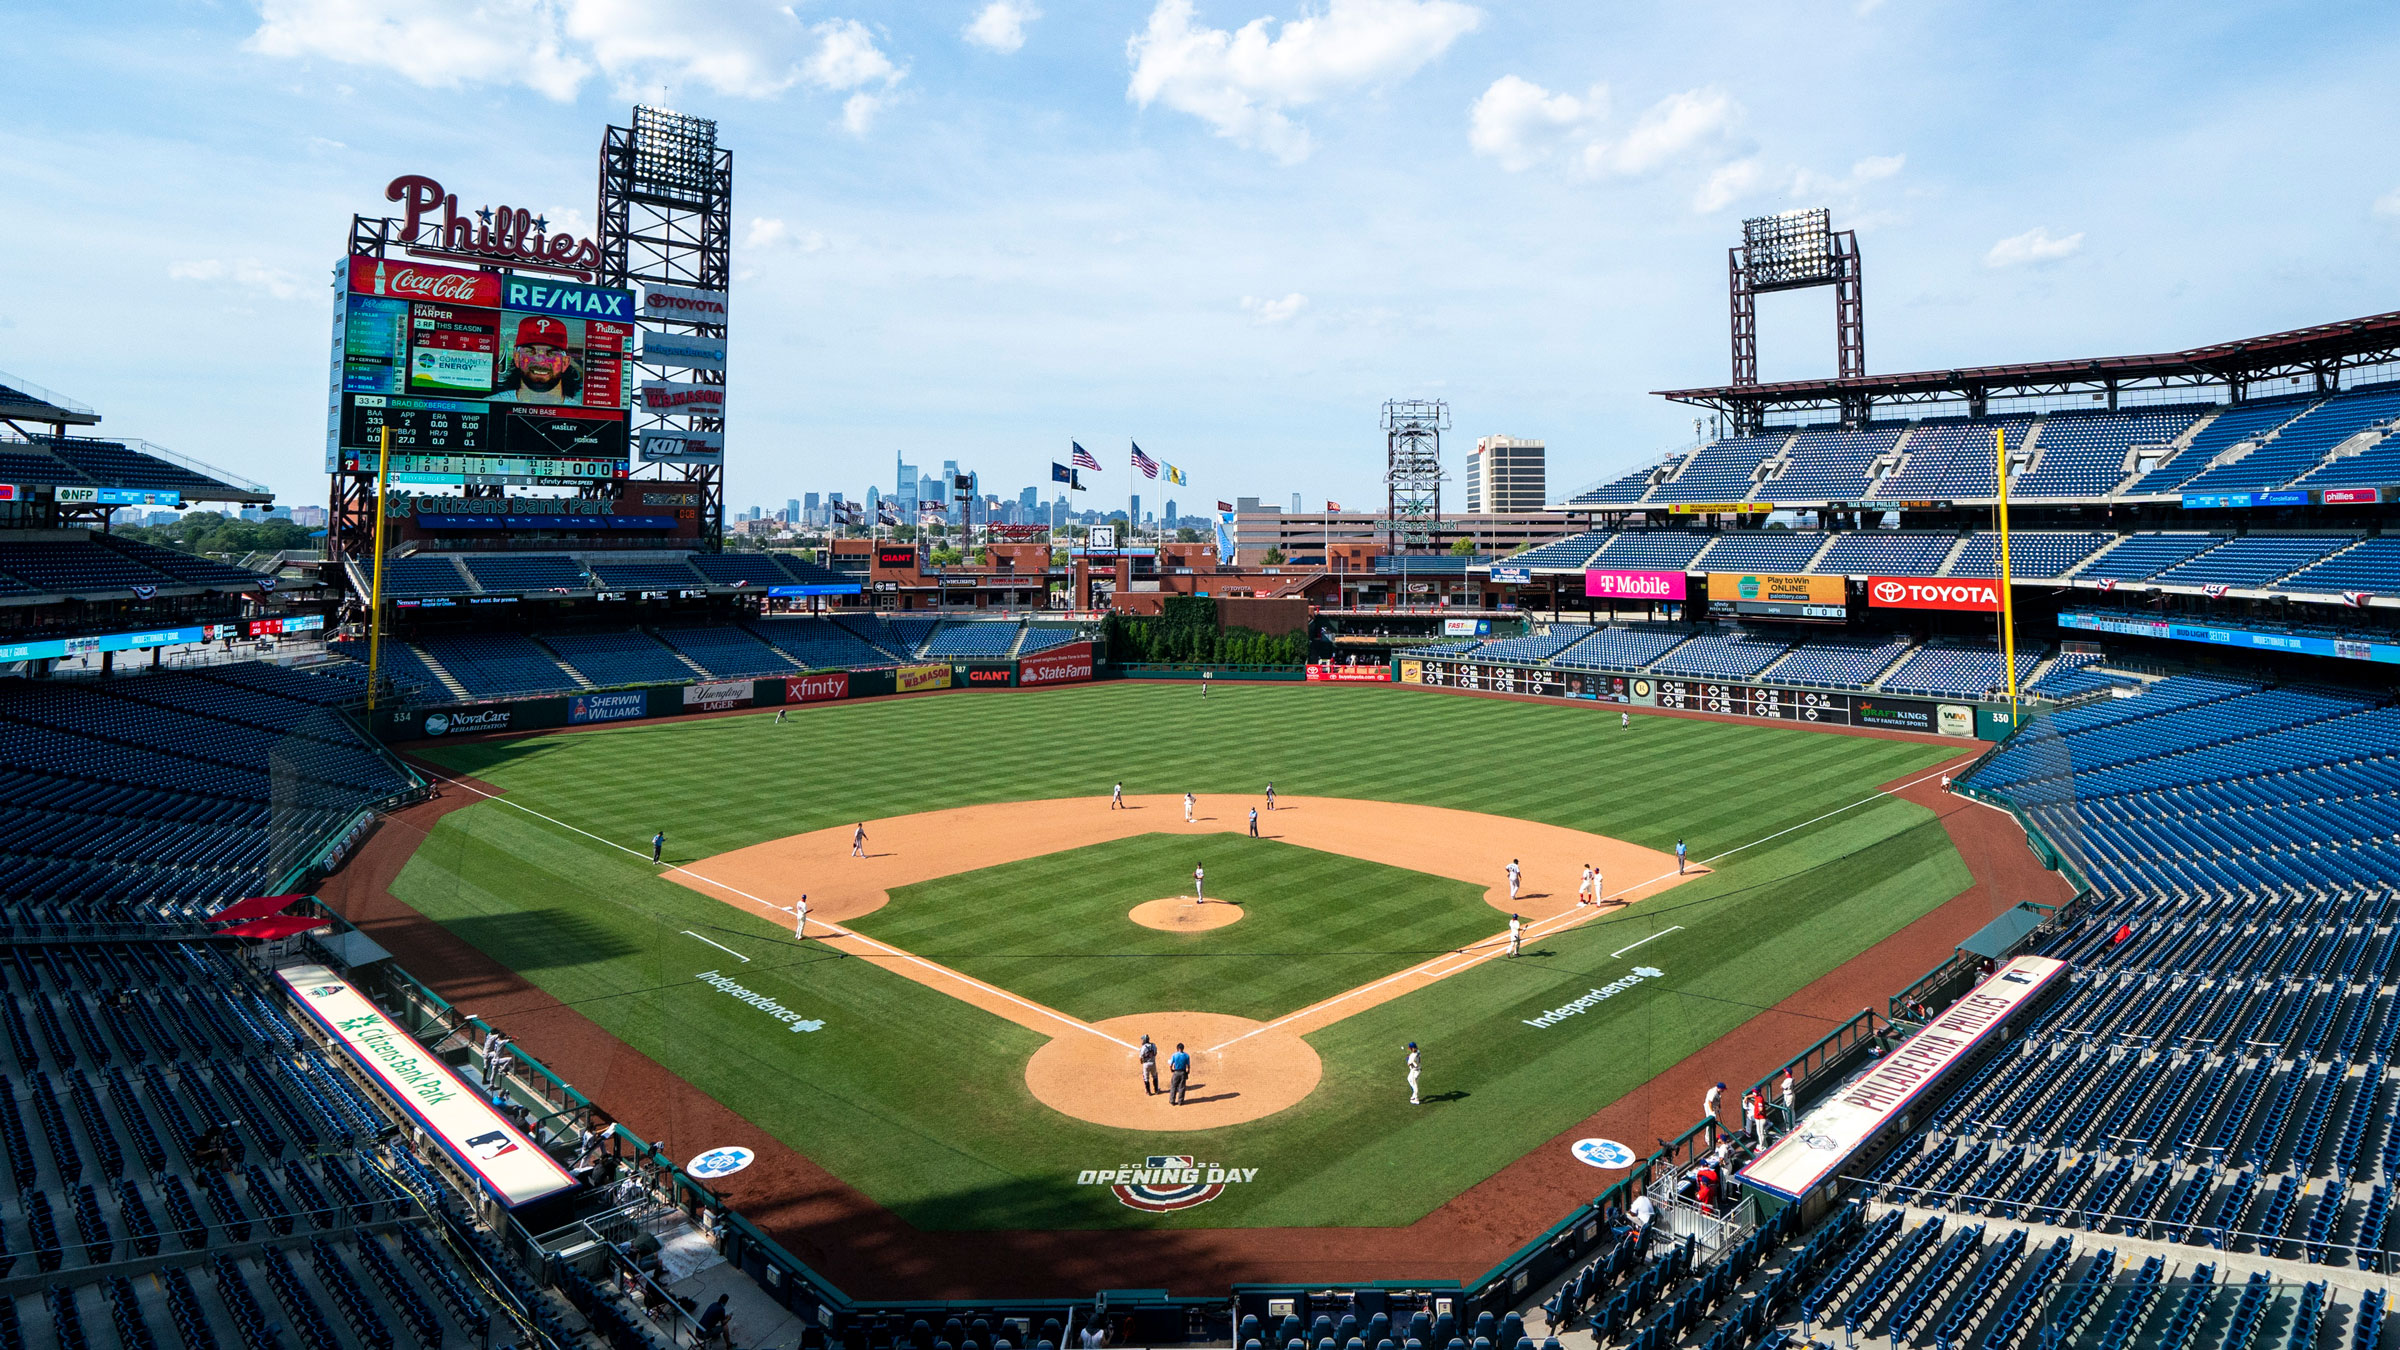 The Miami Marlins play the Philadelphia Phillies at Citizens Bank Park, the home of the Phillies, on Sunday.